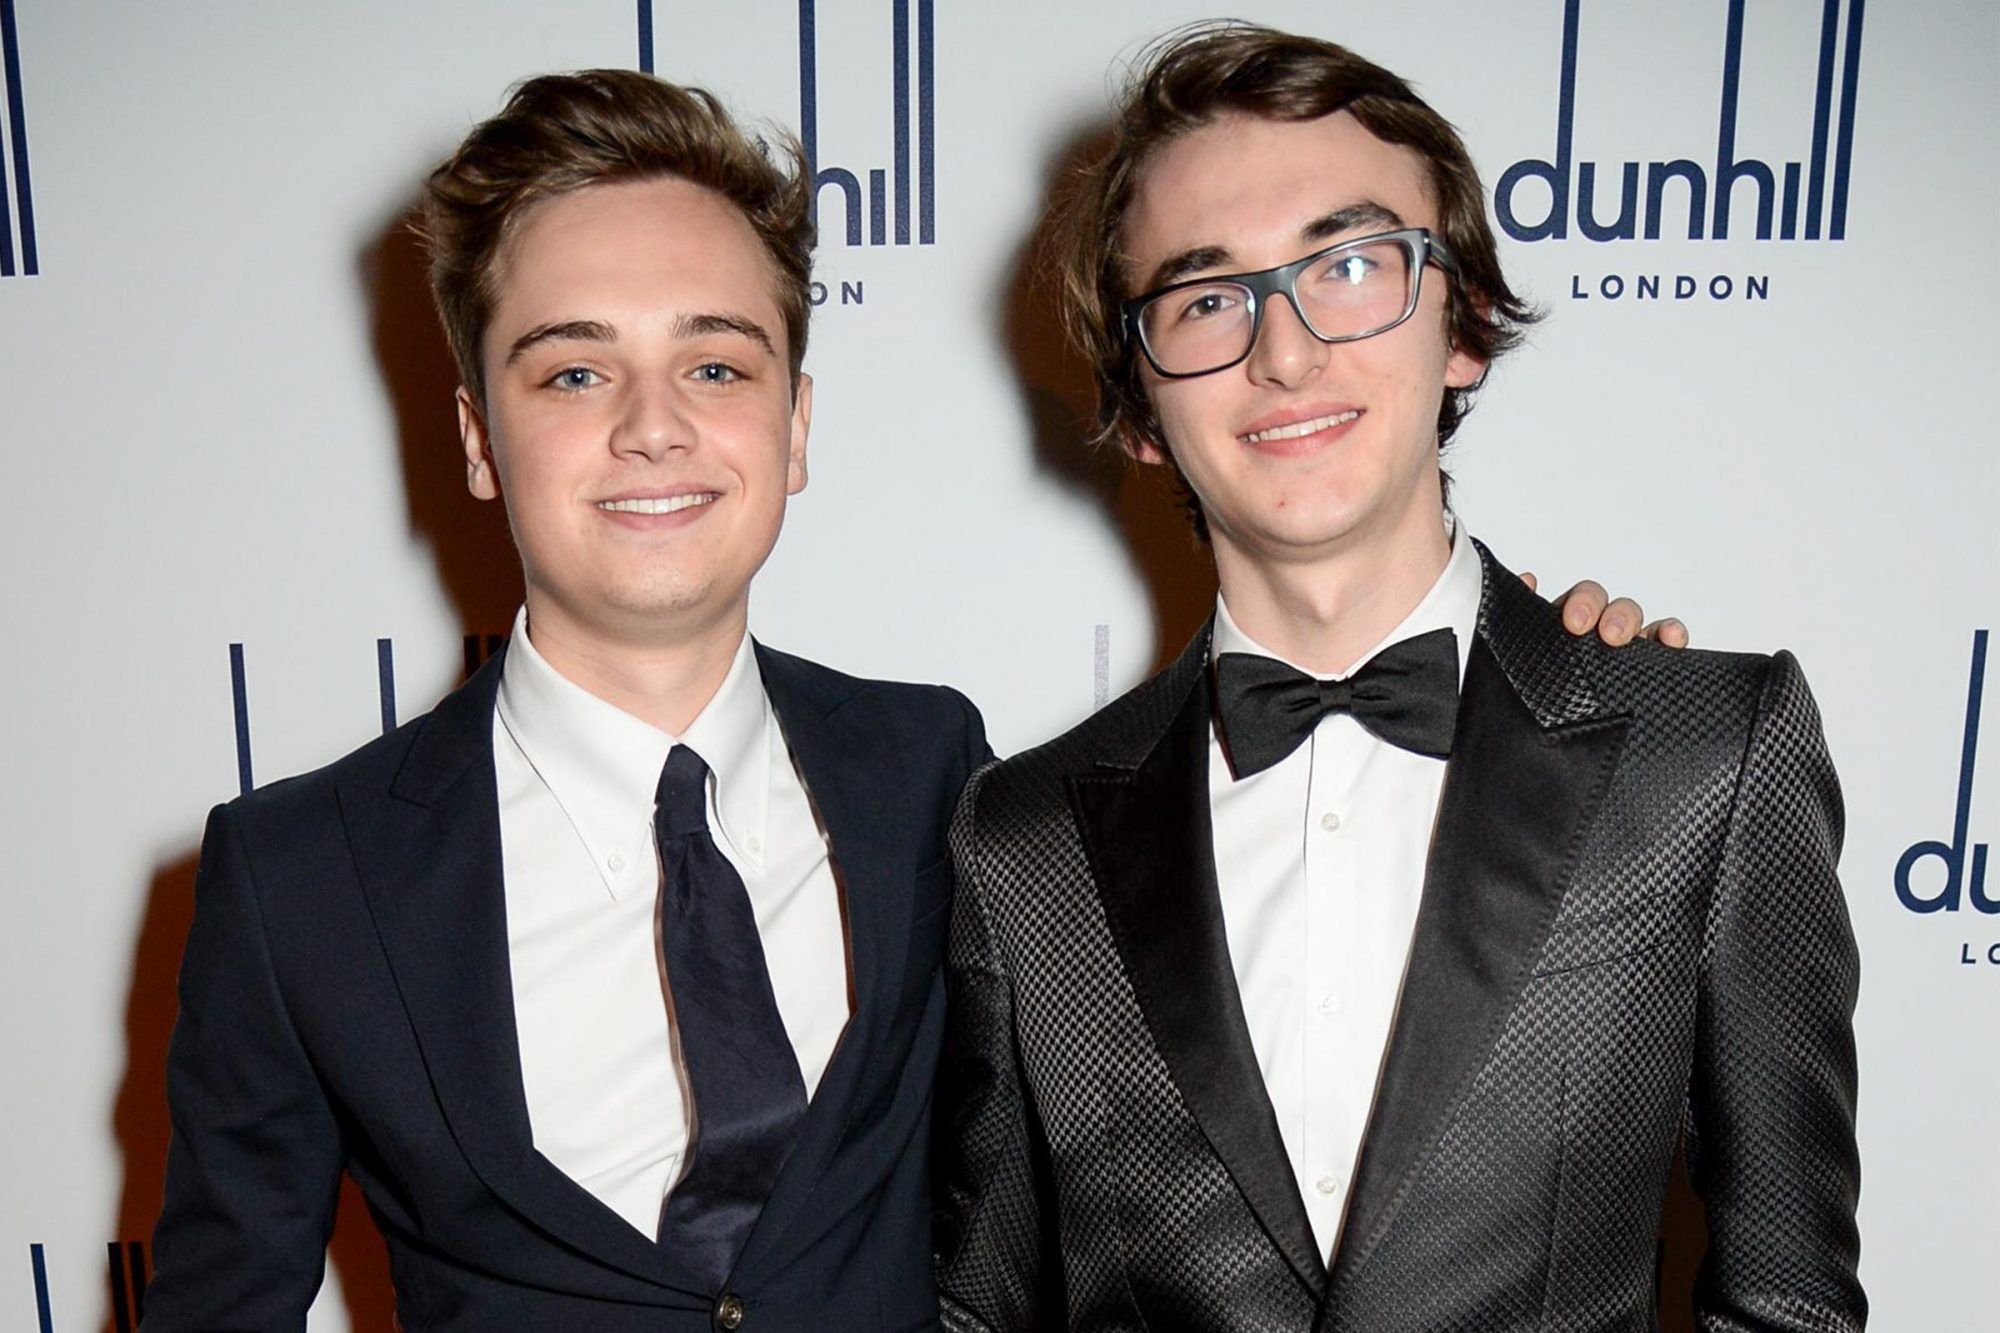 Dean-Charles Chapman and Isaac Hempstead Wright